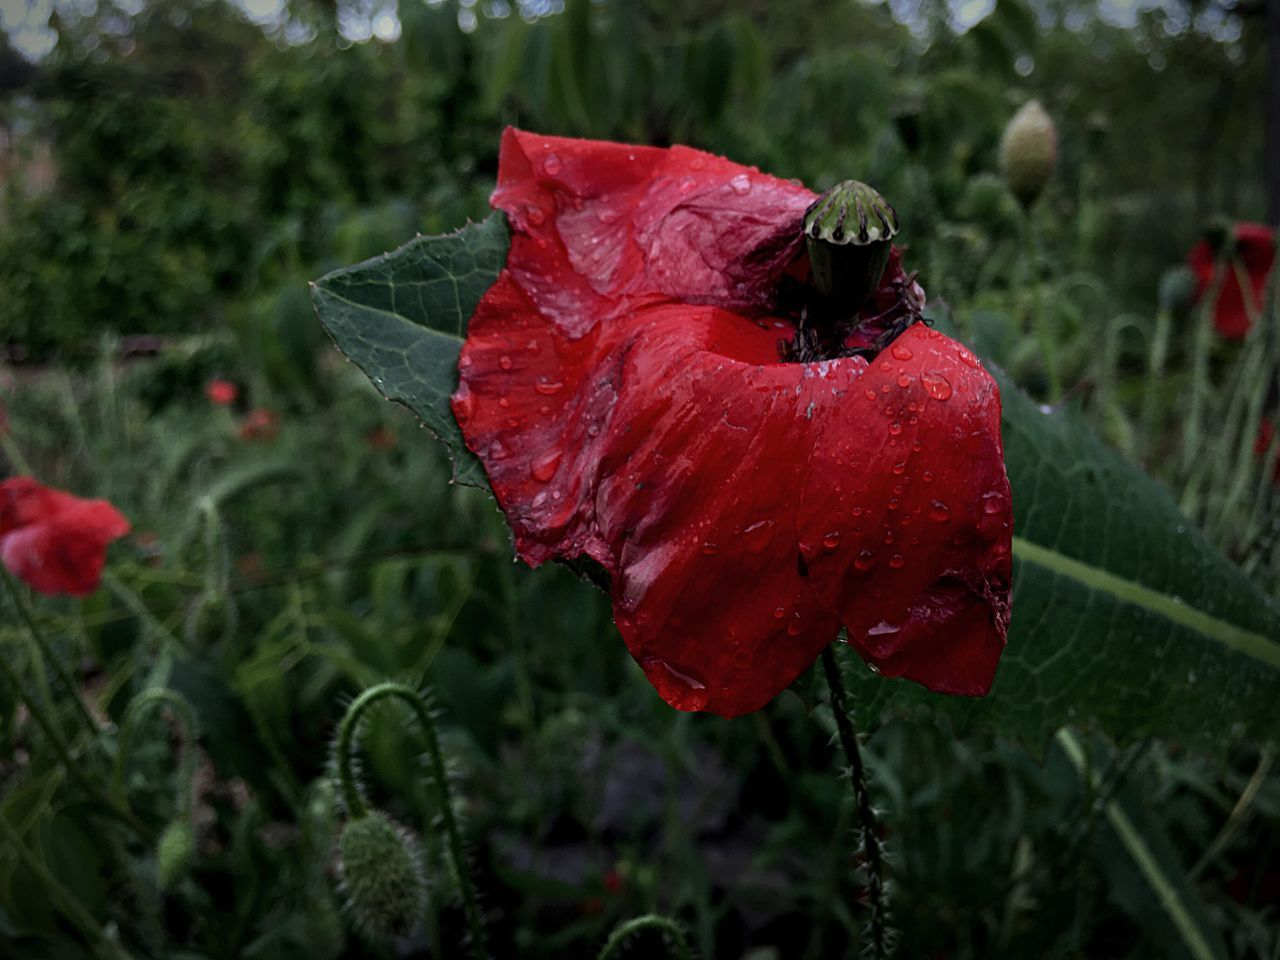 Plant Nature Growth Flower Red Fragility Beauty In Nature Freshness Petal Wet Close-up Outdoors No People Blooming Flower Head Day Animal Themes Poppy Poppy Flowers